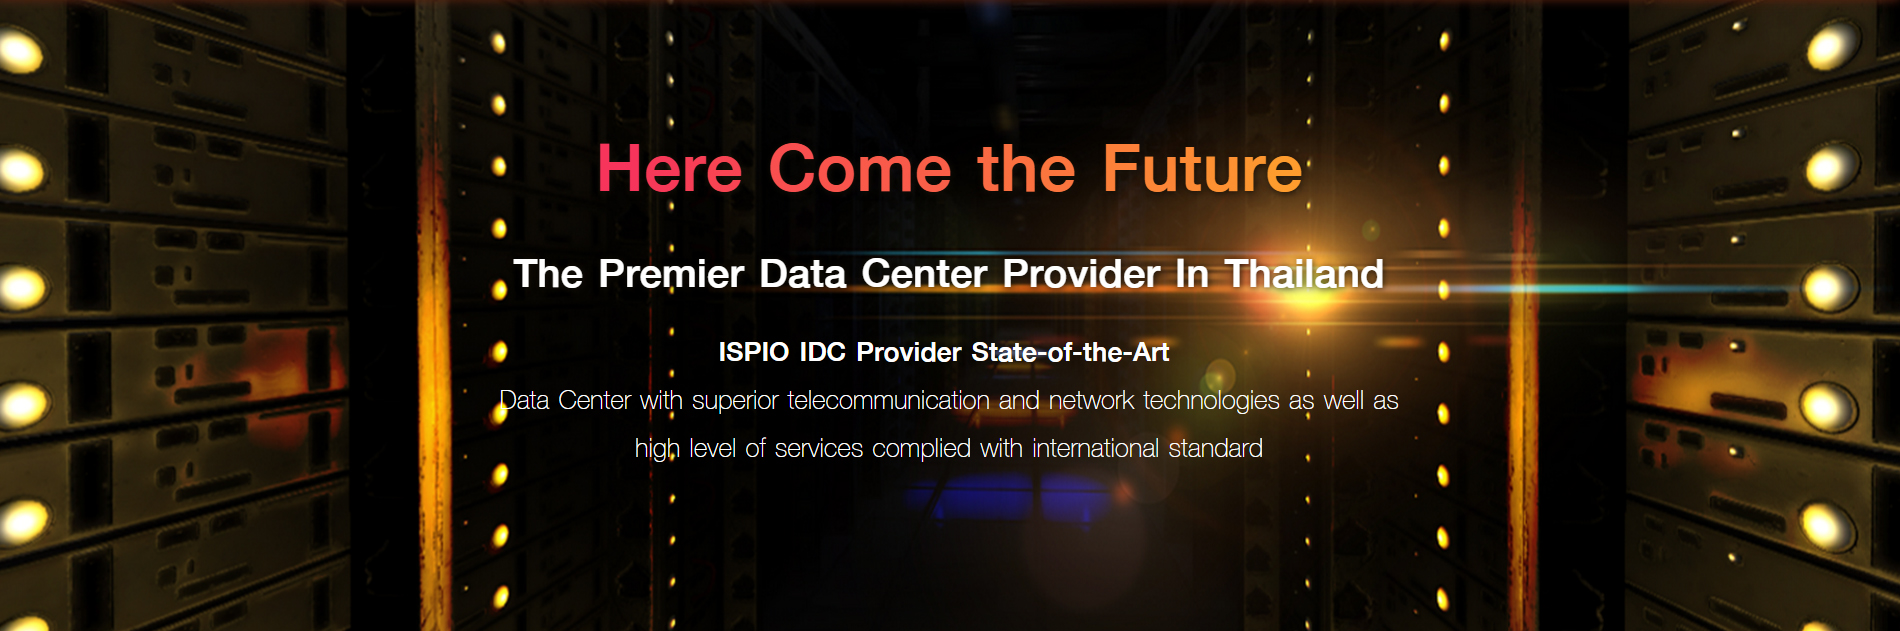 Data Center Provider In Thailand